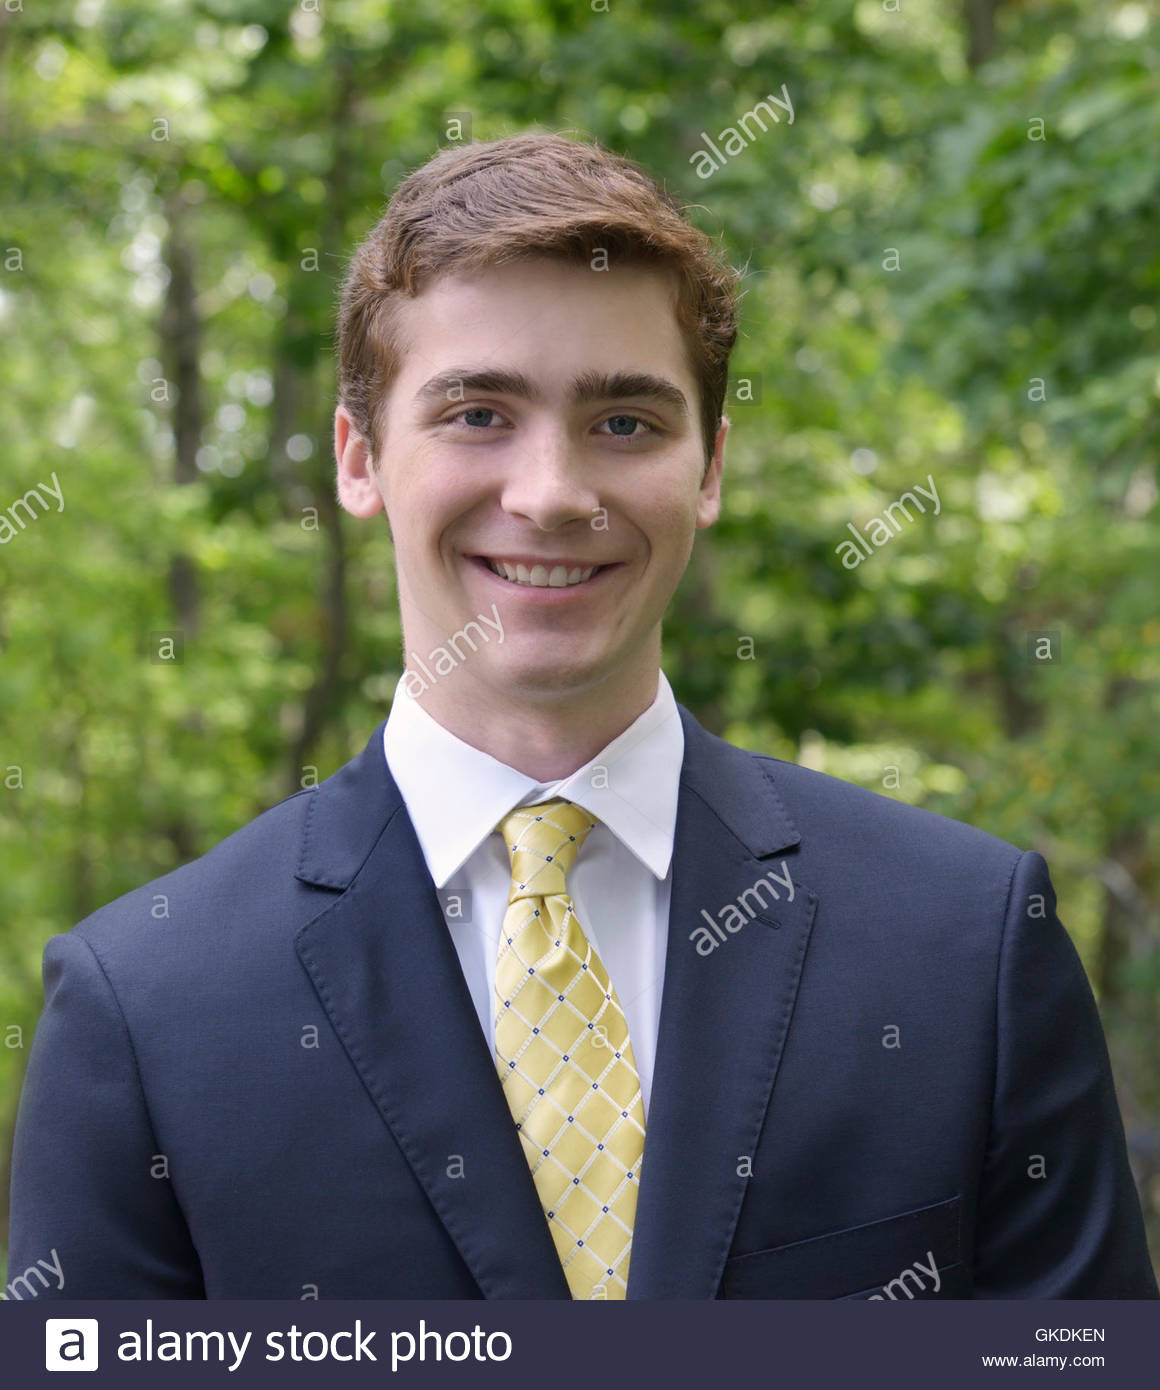 Handsome young man portrait, 19/20/21 years old, millennial generation or Gen Y, in suit and tie, outdoors - Stock Image